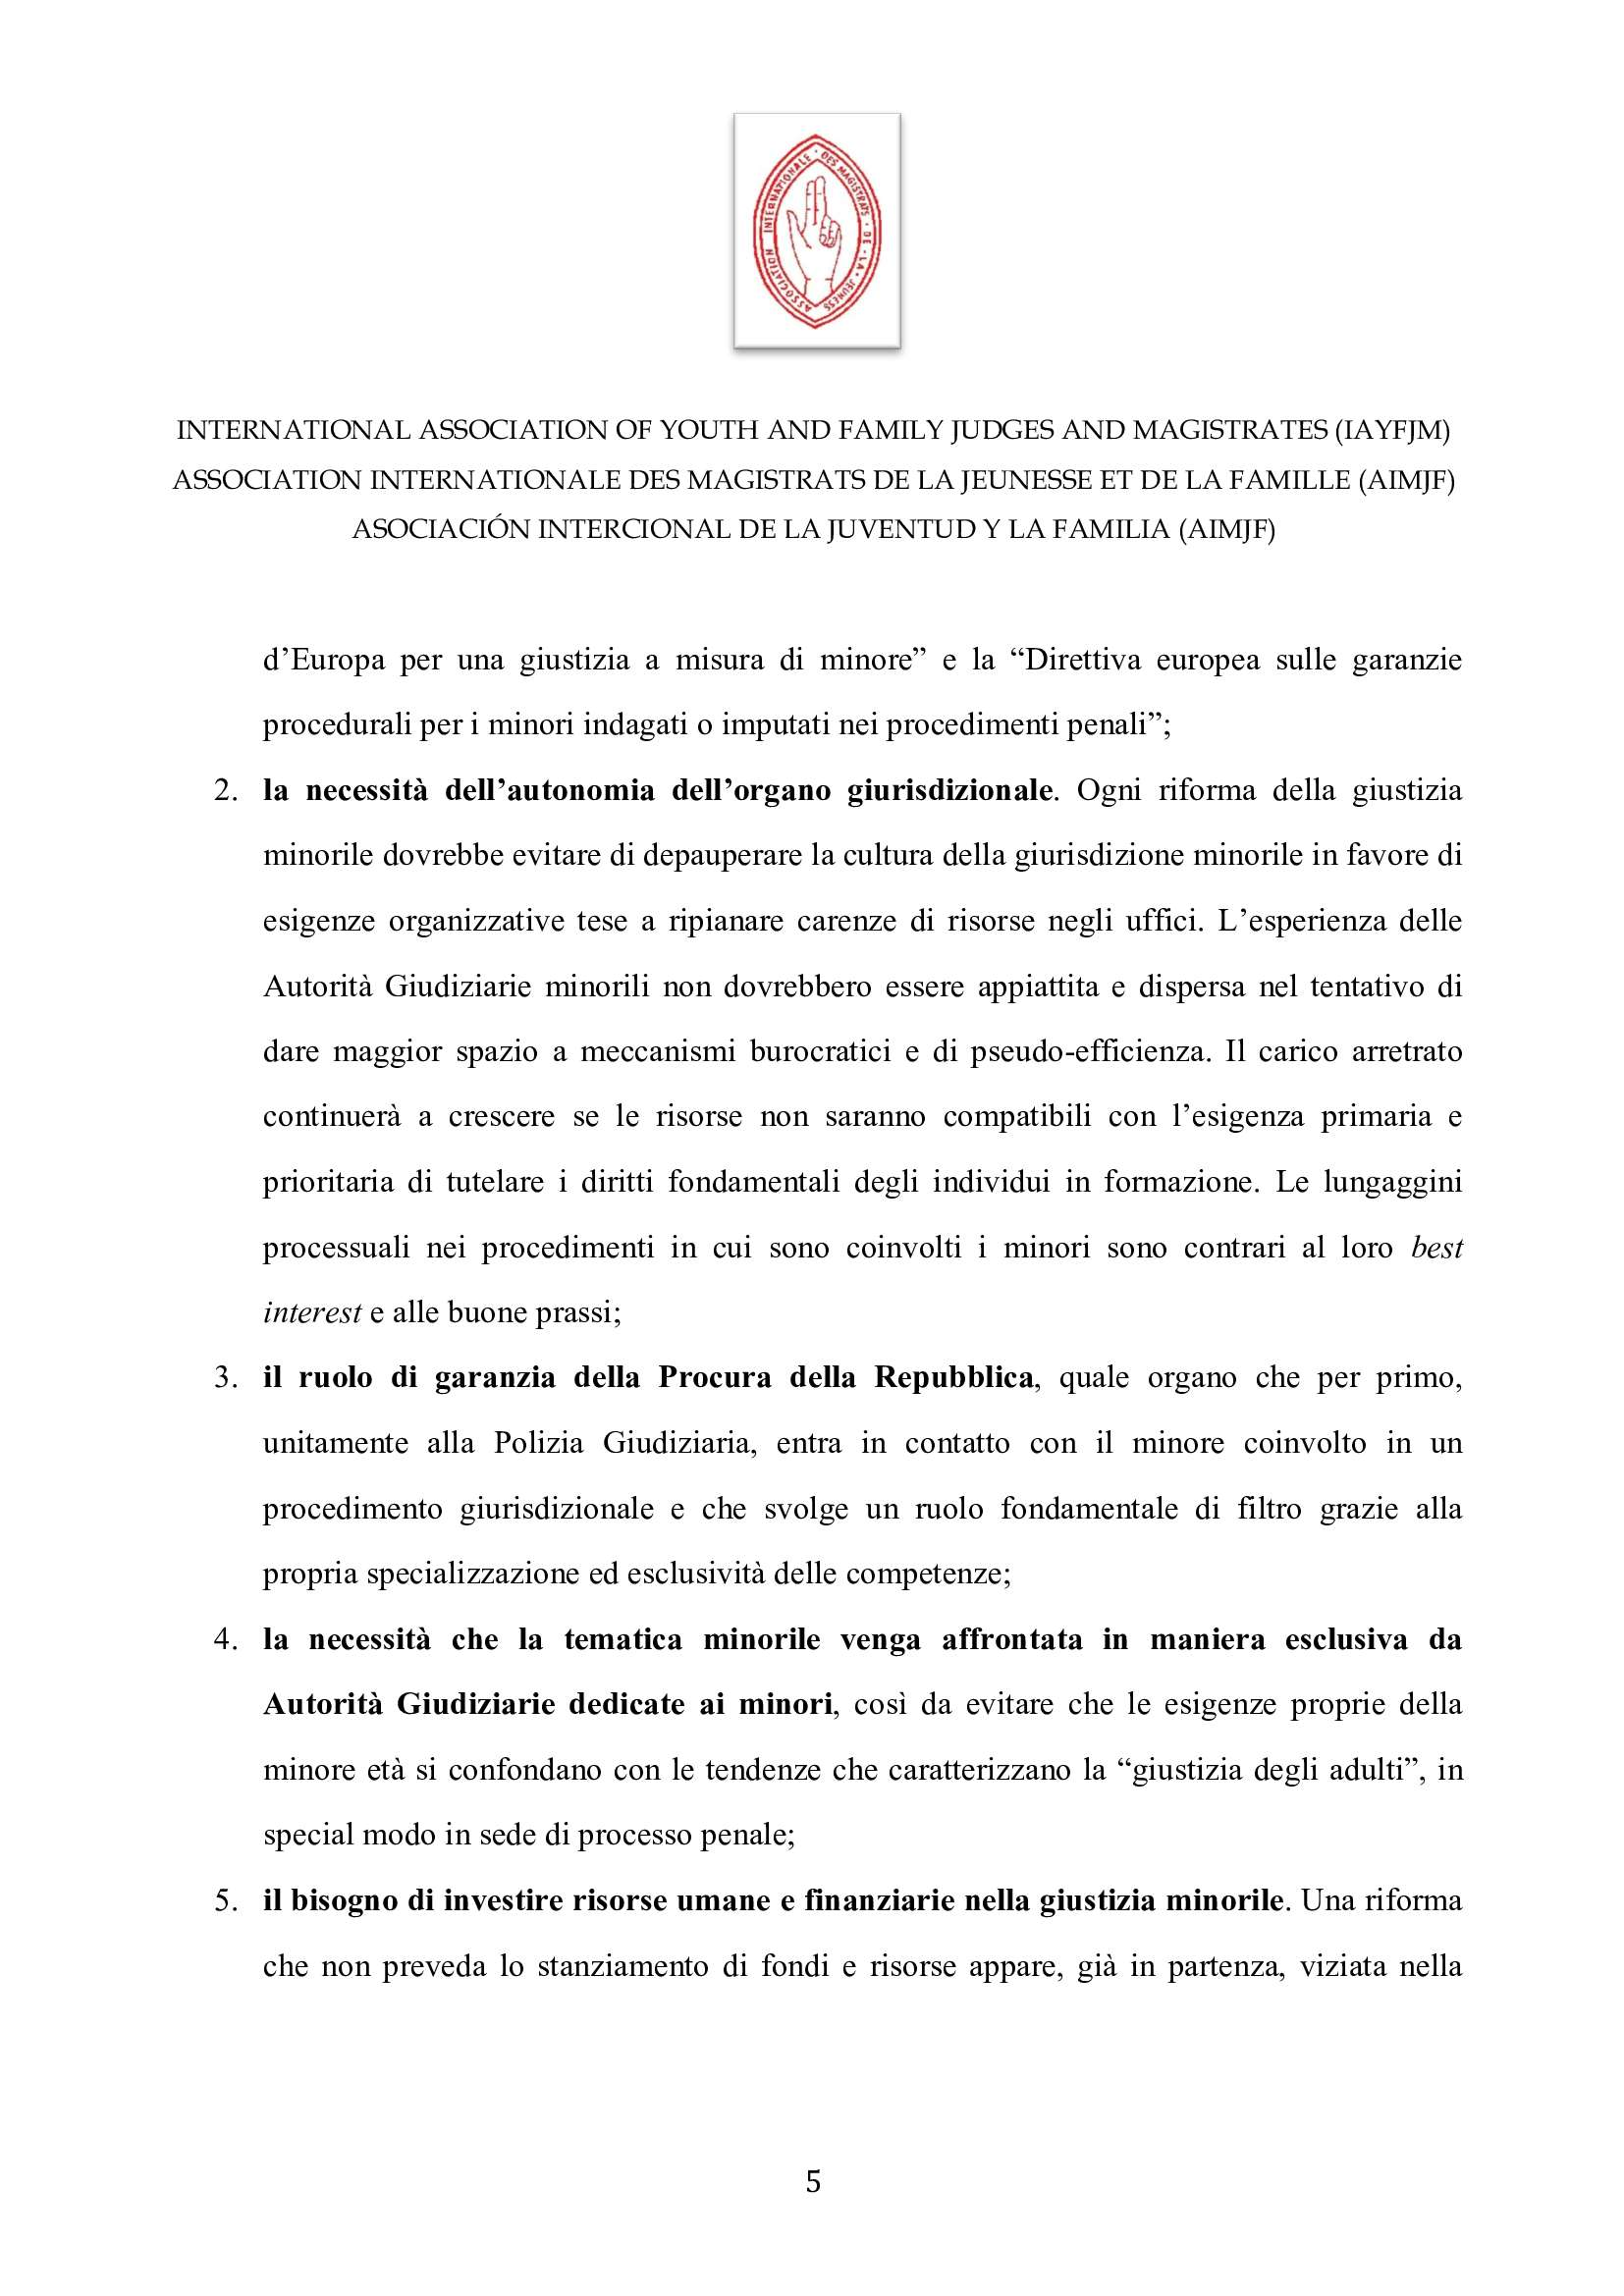 IAYFJM Statement on the Italian Juvenile Justice R 004